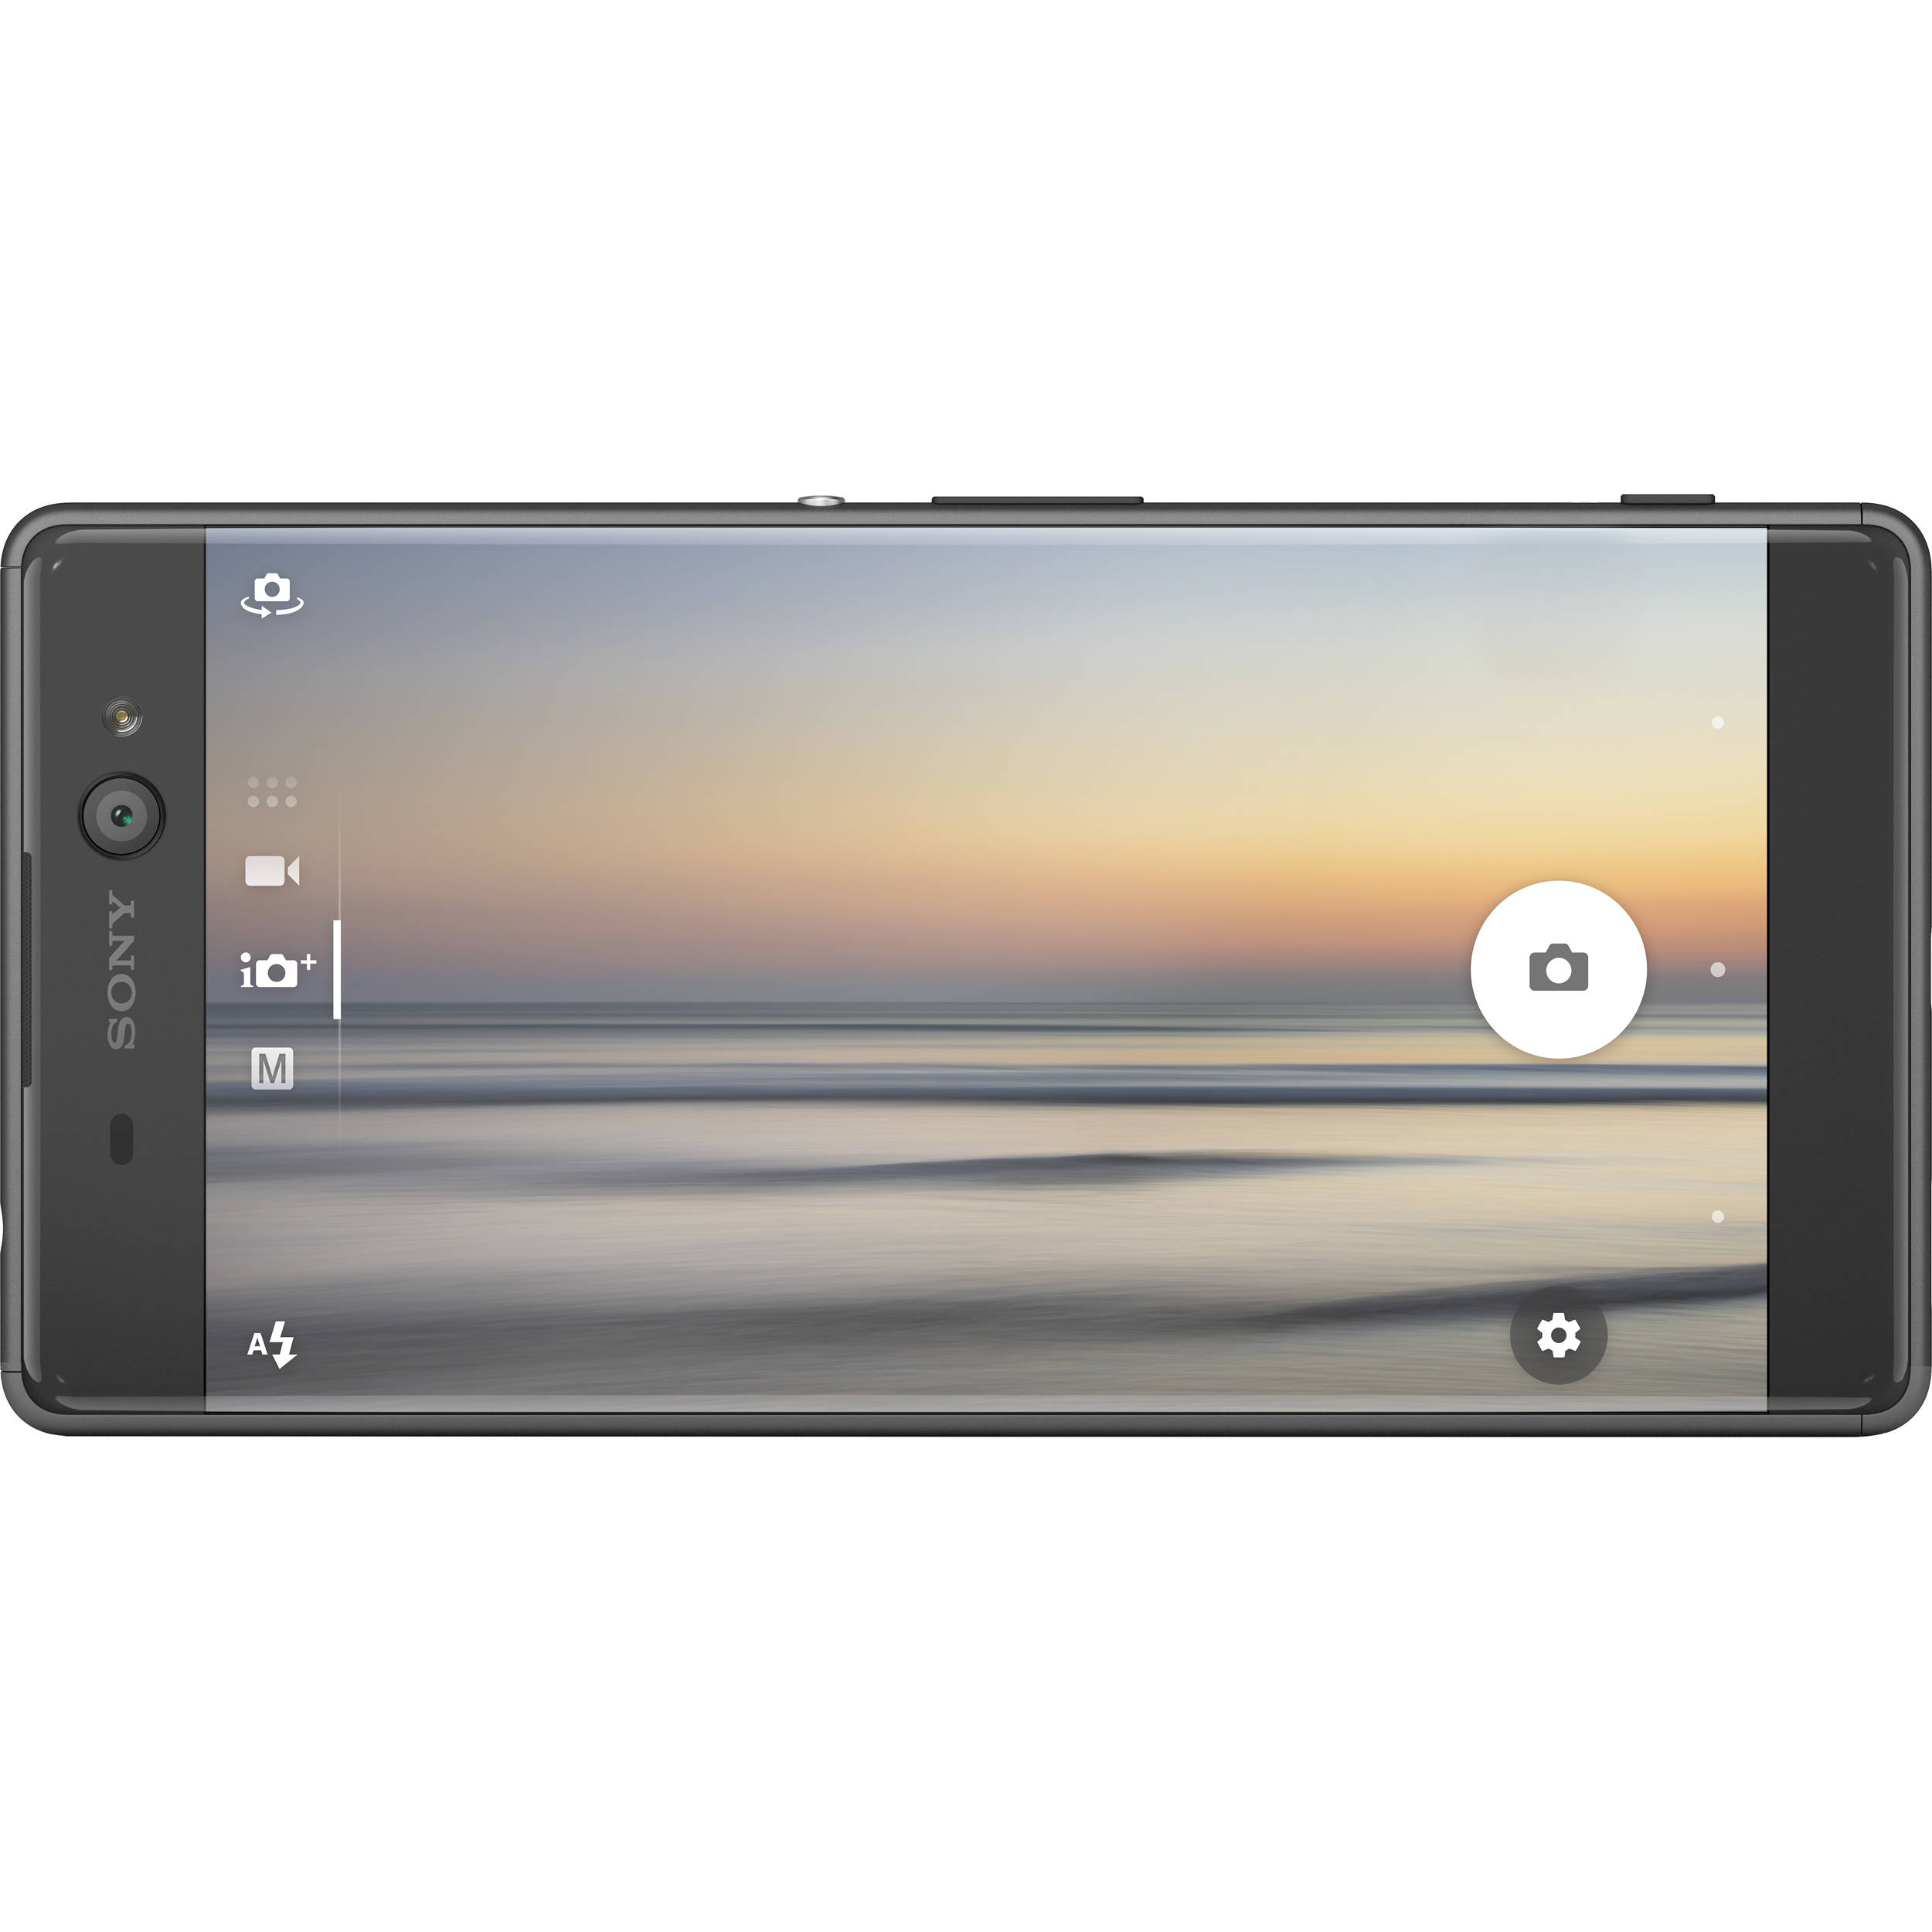 Sony Xperia XA Ultra F3213 16GB Smartphone (Unlocked, Graphite Black)